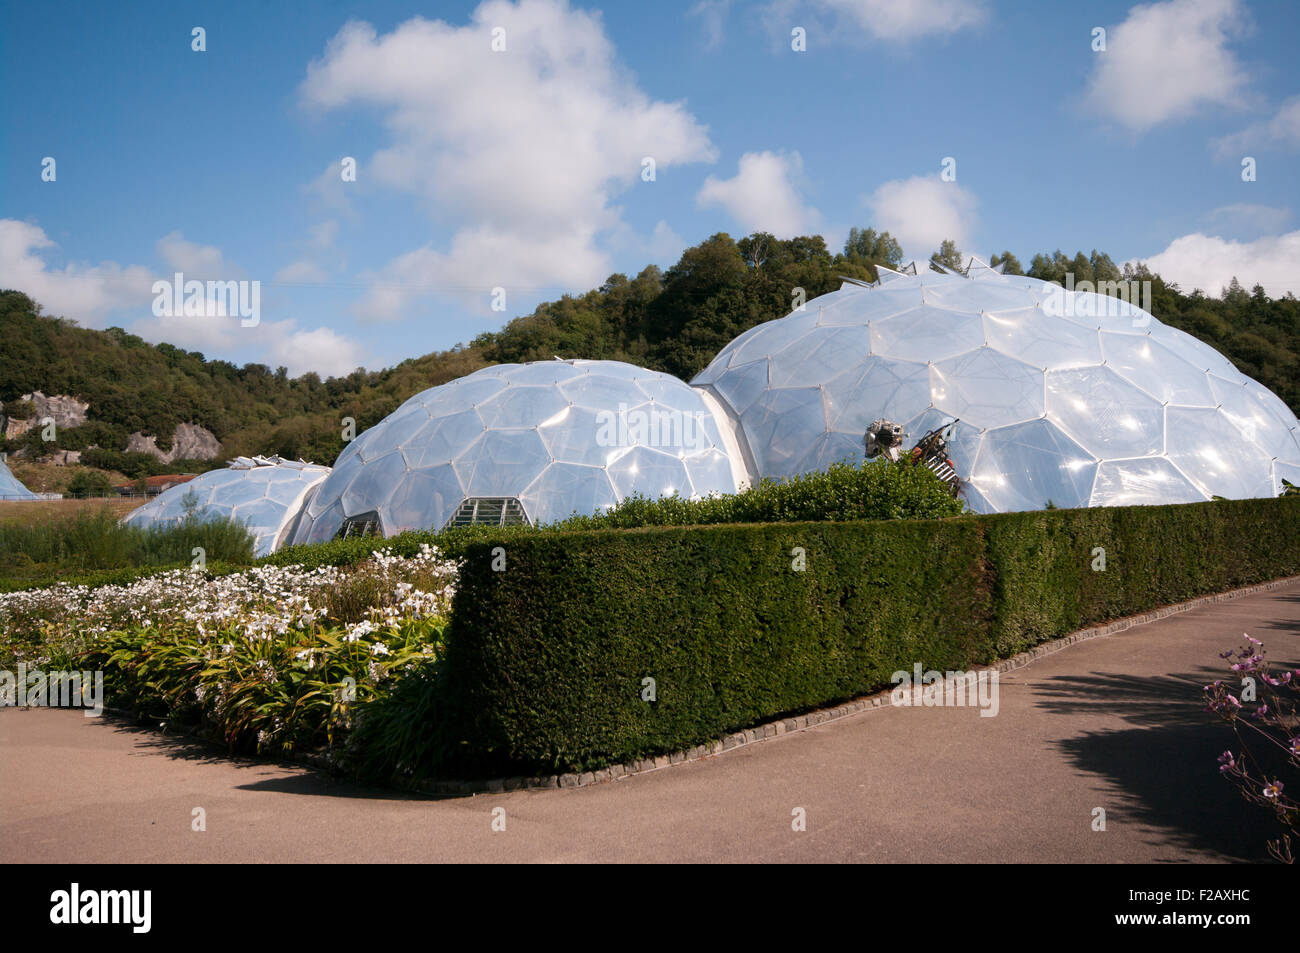 The Eden Project Cornwall England UK - Stock Image